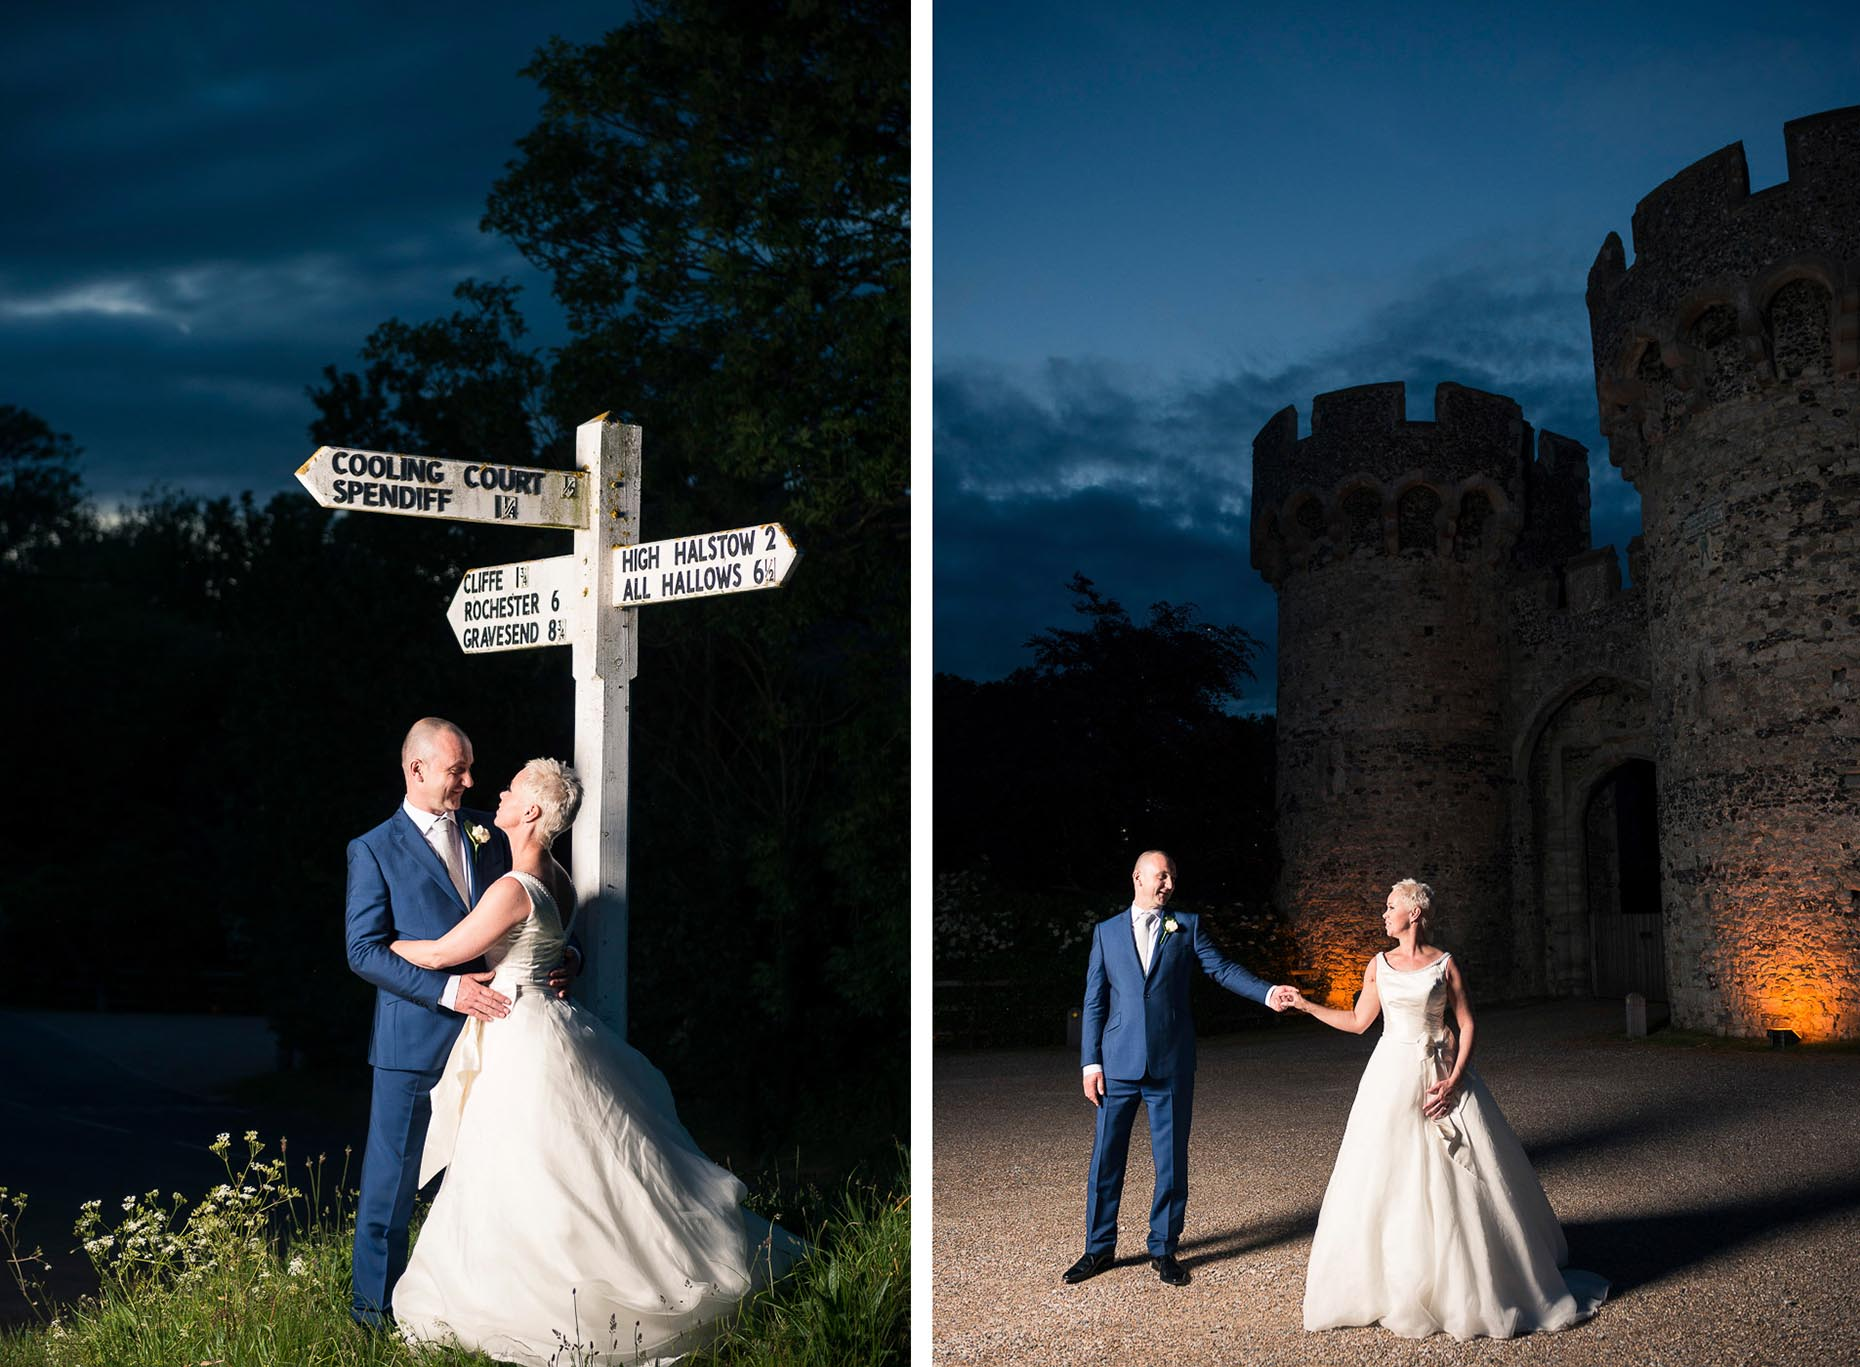 twilight-wedding-cooling-castle-essex-liam-13